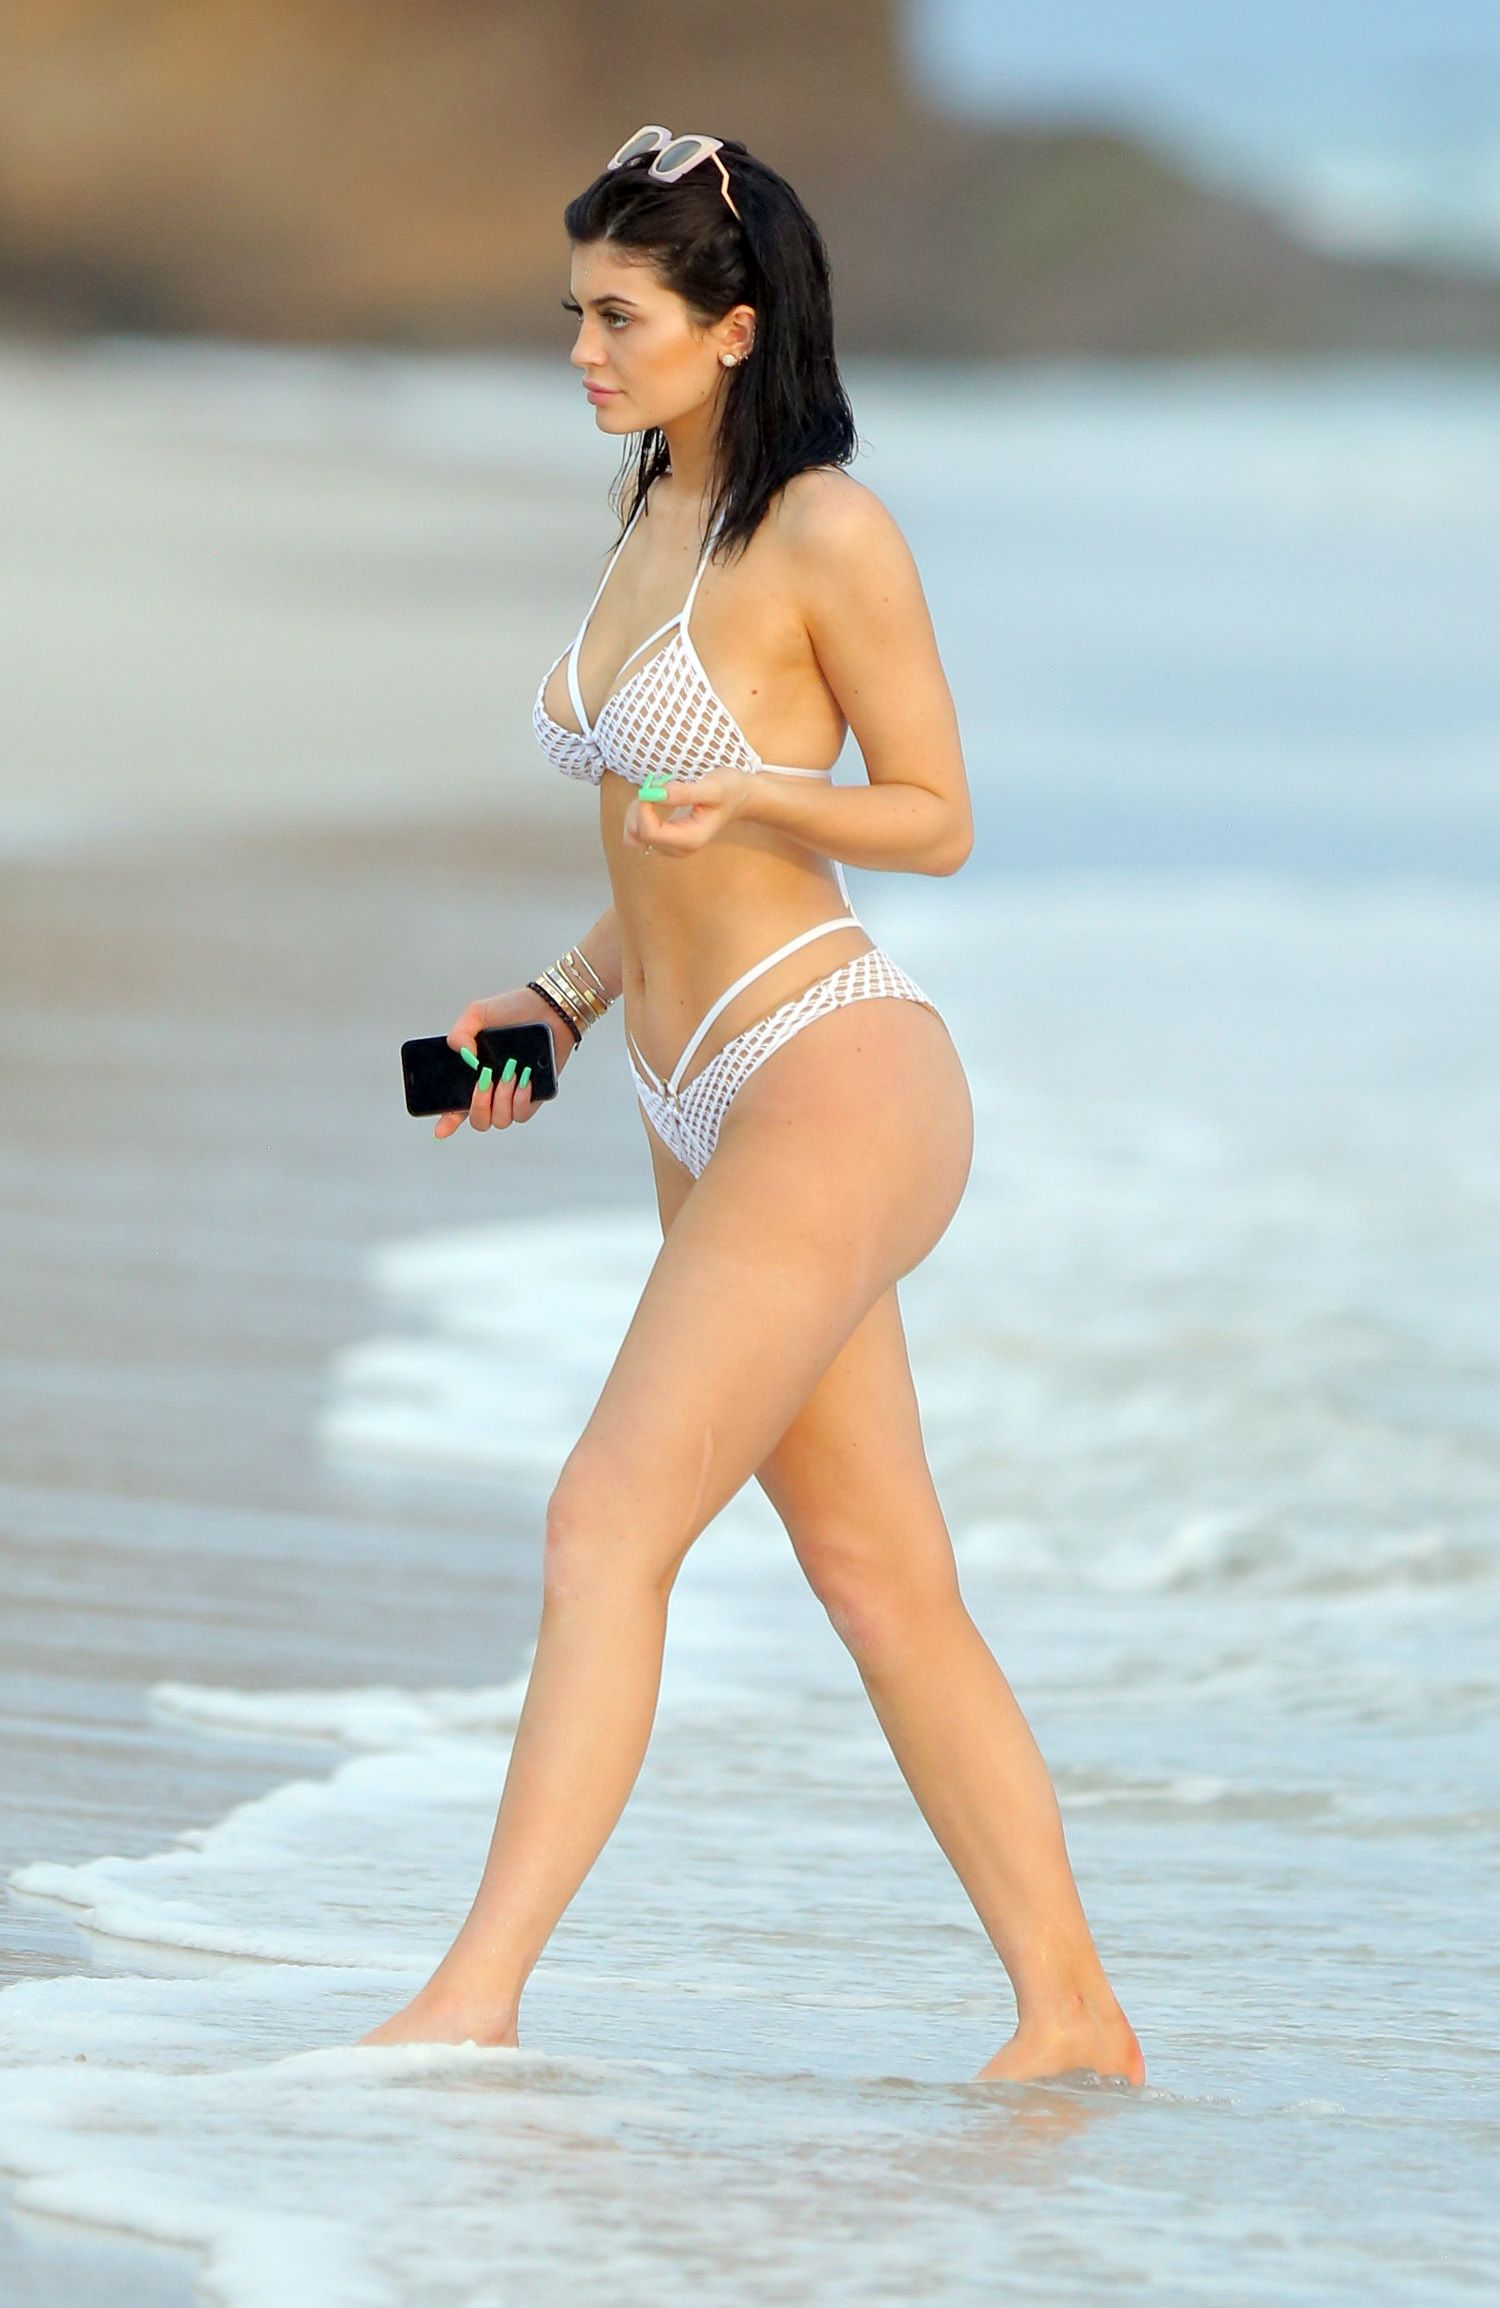 Kylie jenner nude pictures — img 10